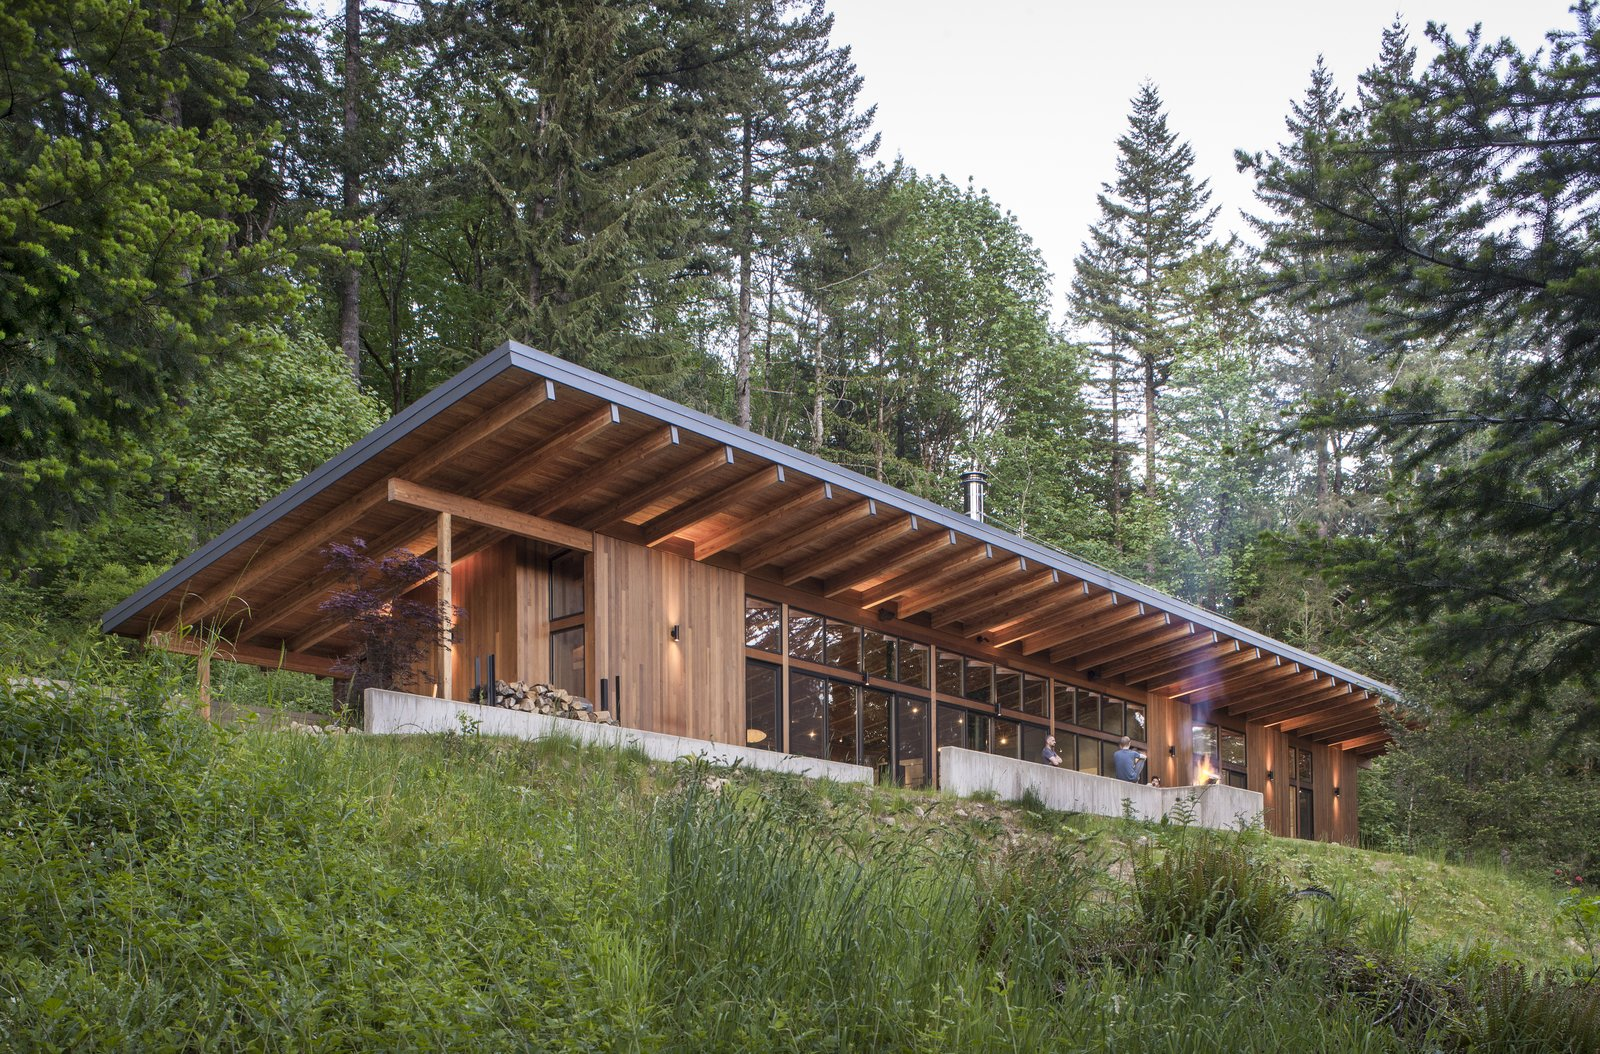 Brightwood Cabin Modern Home In Mount Hood Village Oregon Make Your Own Beautiful  HD Wallpapers, Images Over 1000+ [ralydesign.ml]